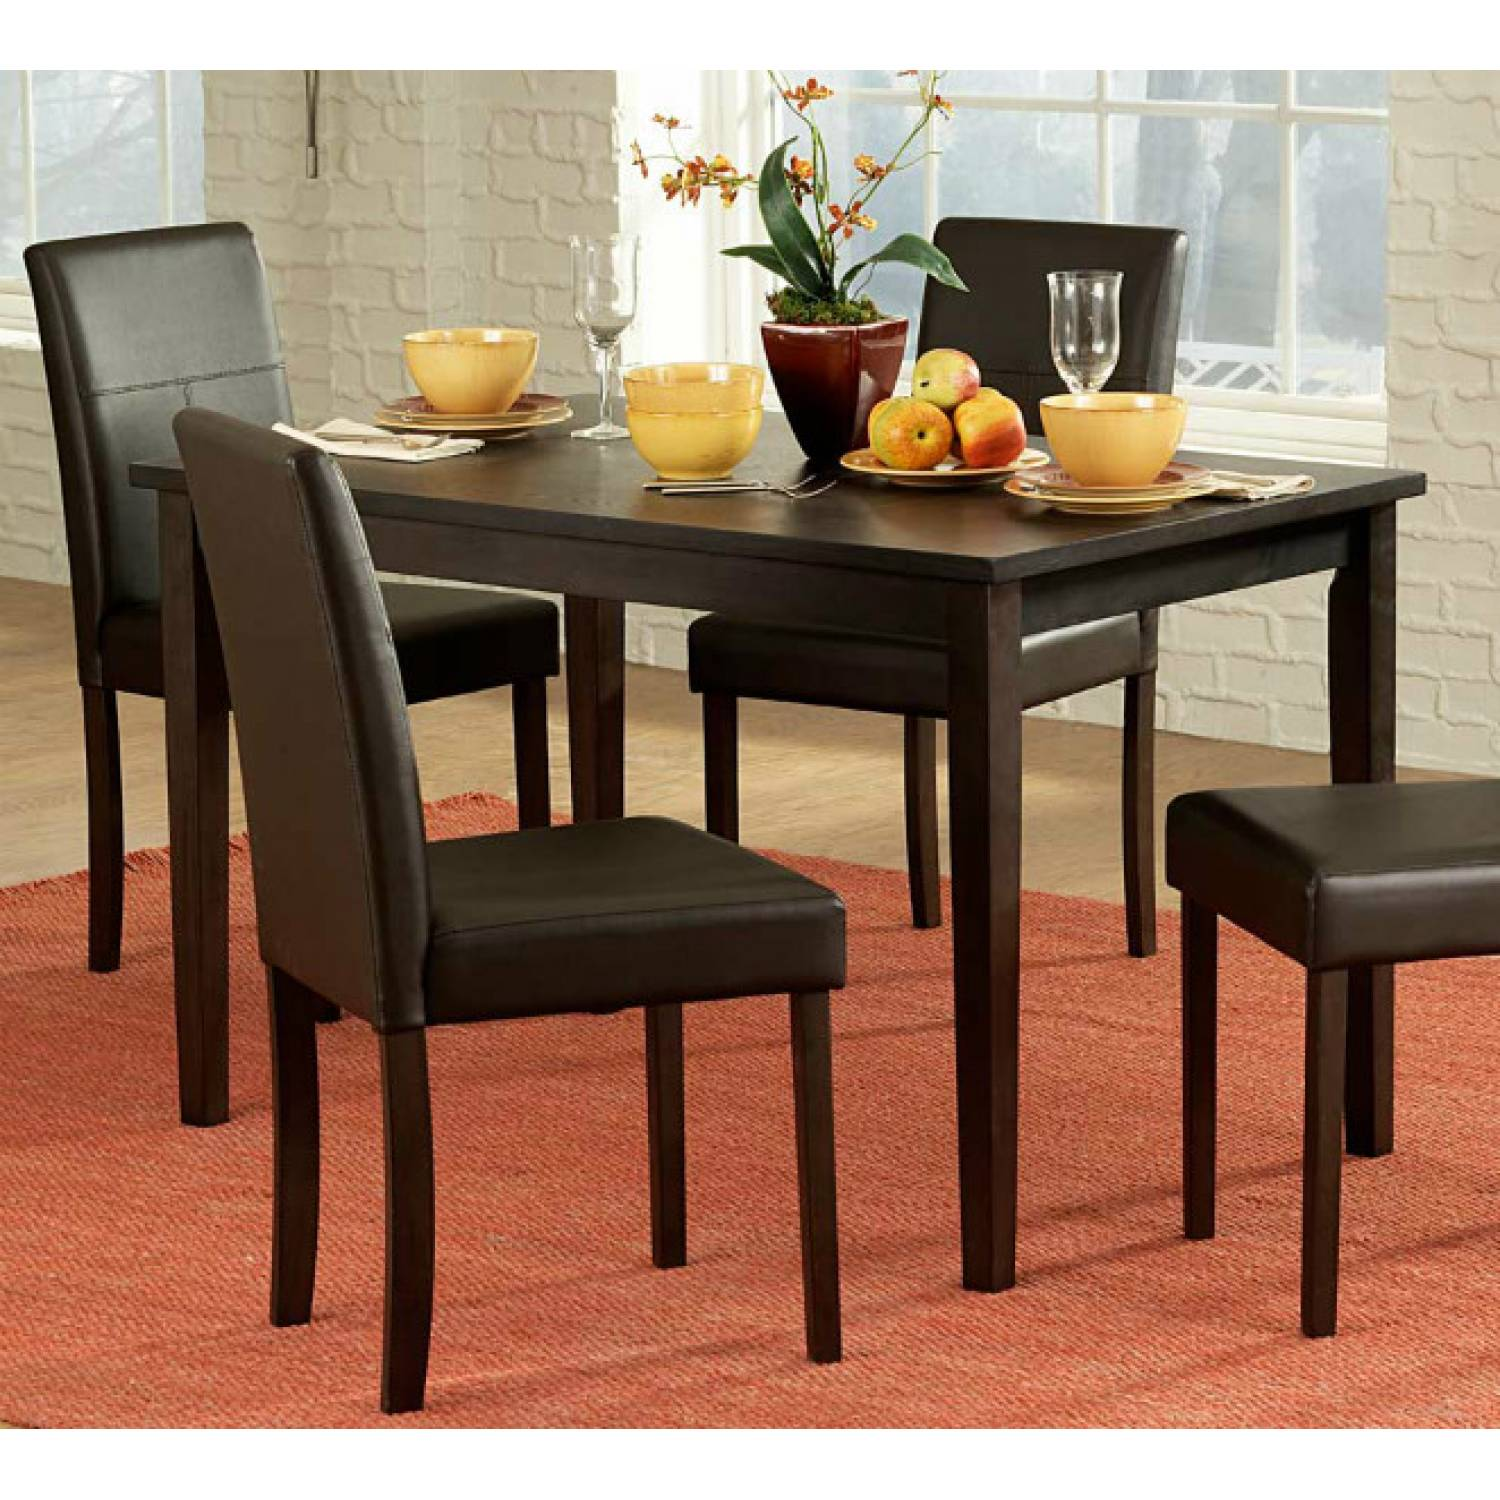 Dover dining table 2434 48 for Dining room table 36 x 48